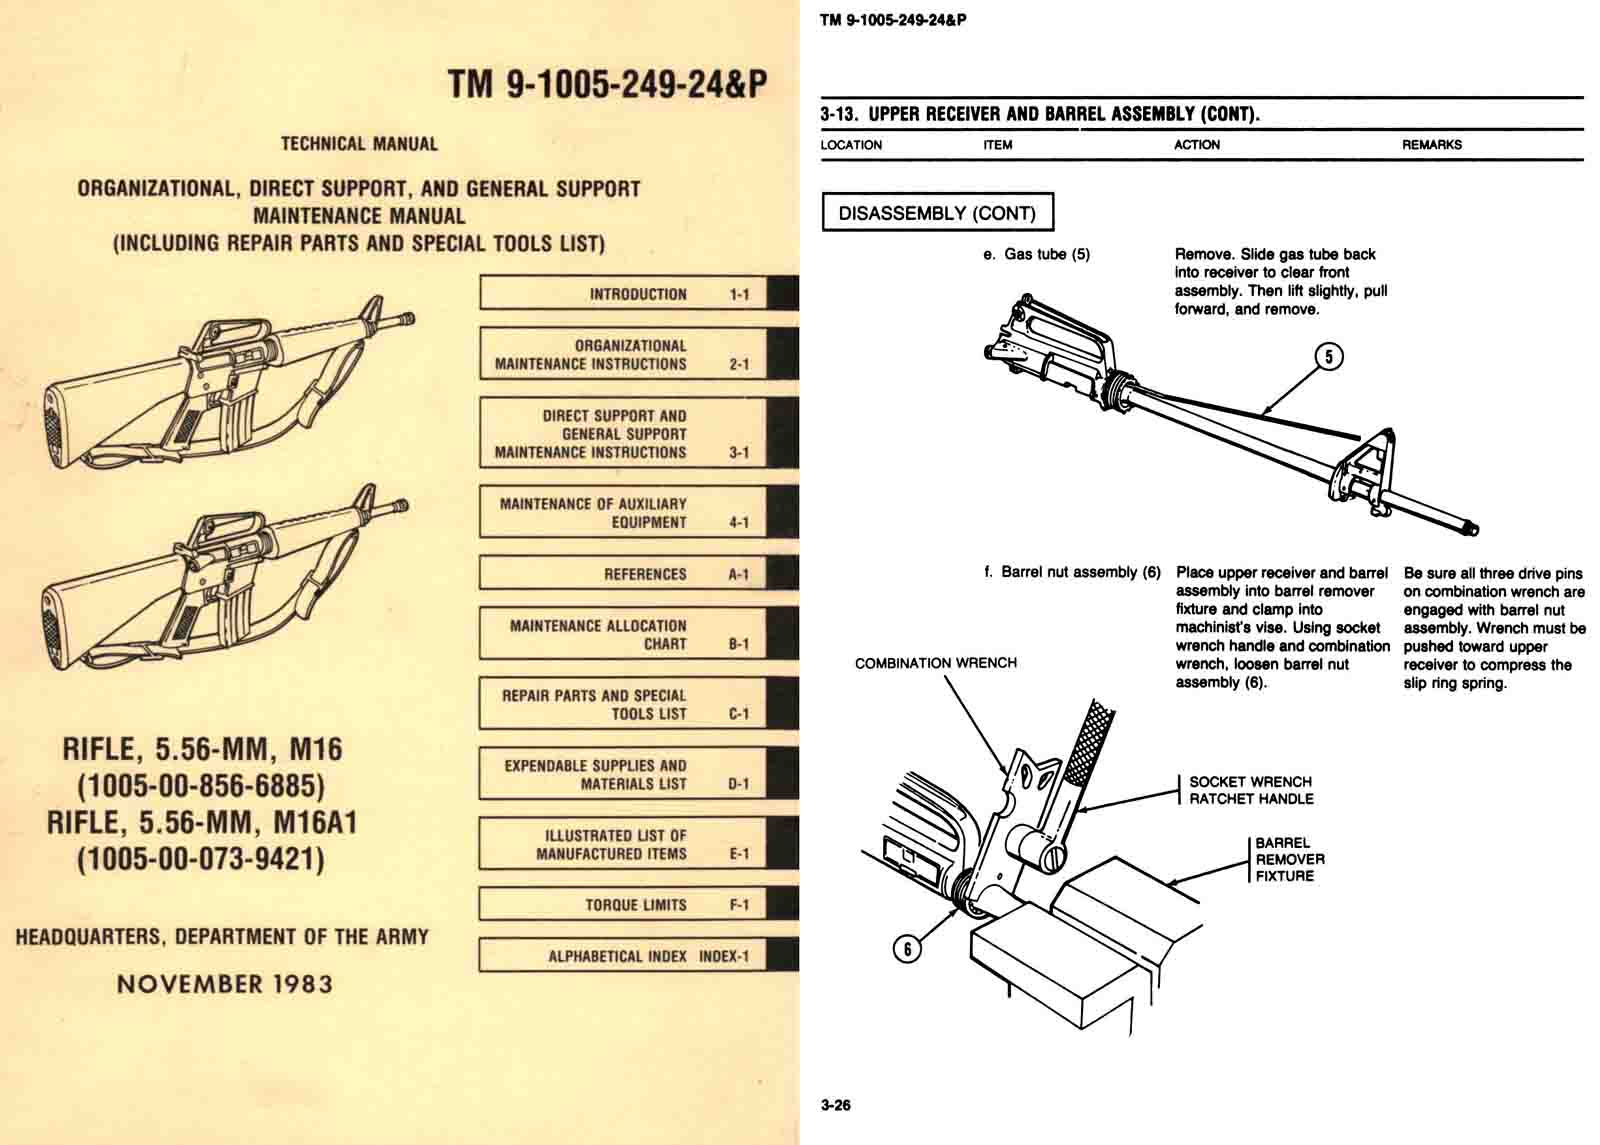 Cornell Publications Llc Old Gun Catalog Reprints In Current Marlin Model 9 Camp Carbine Schematic Car Tuning M16a1 M16 1983 Rifle Tech Maint Manual Tm 1005 249